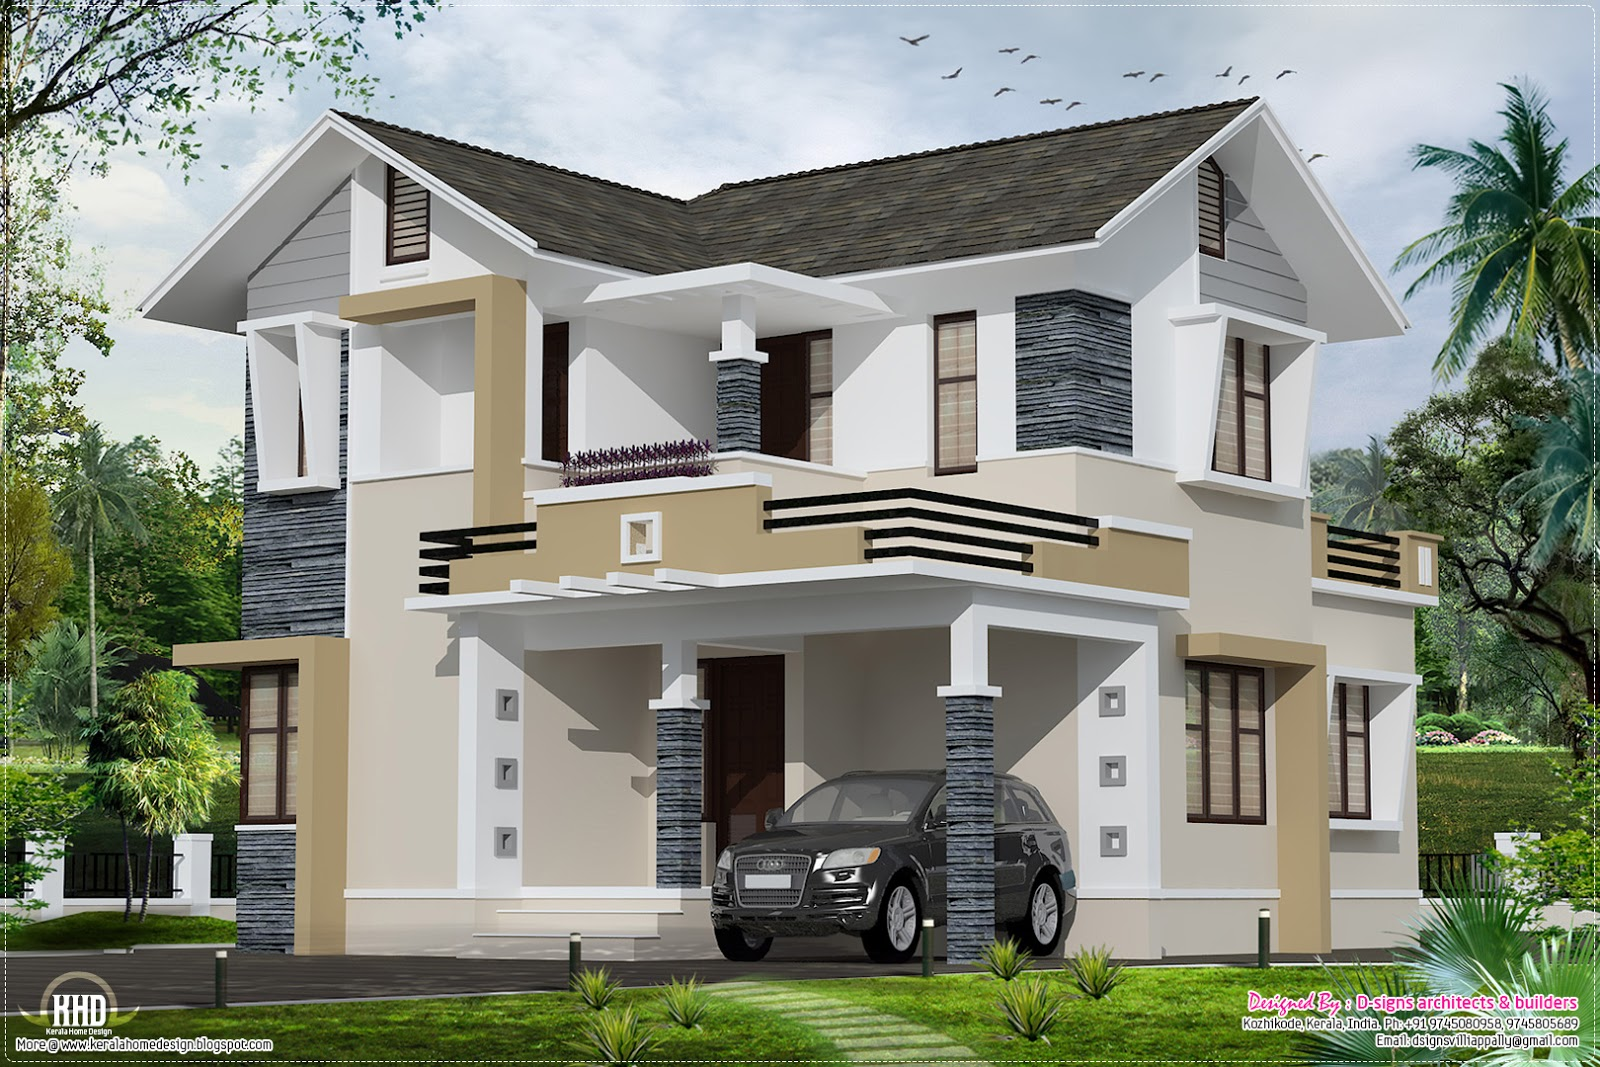 Stylish Small Home Design Kerala Home Design And Floor Plans